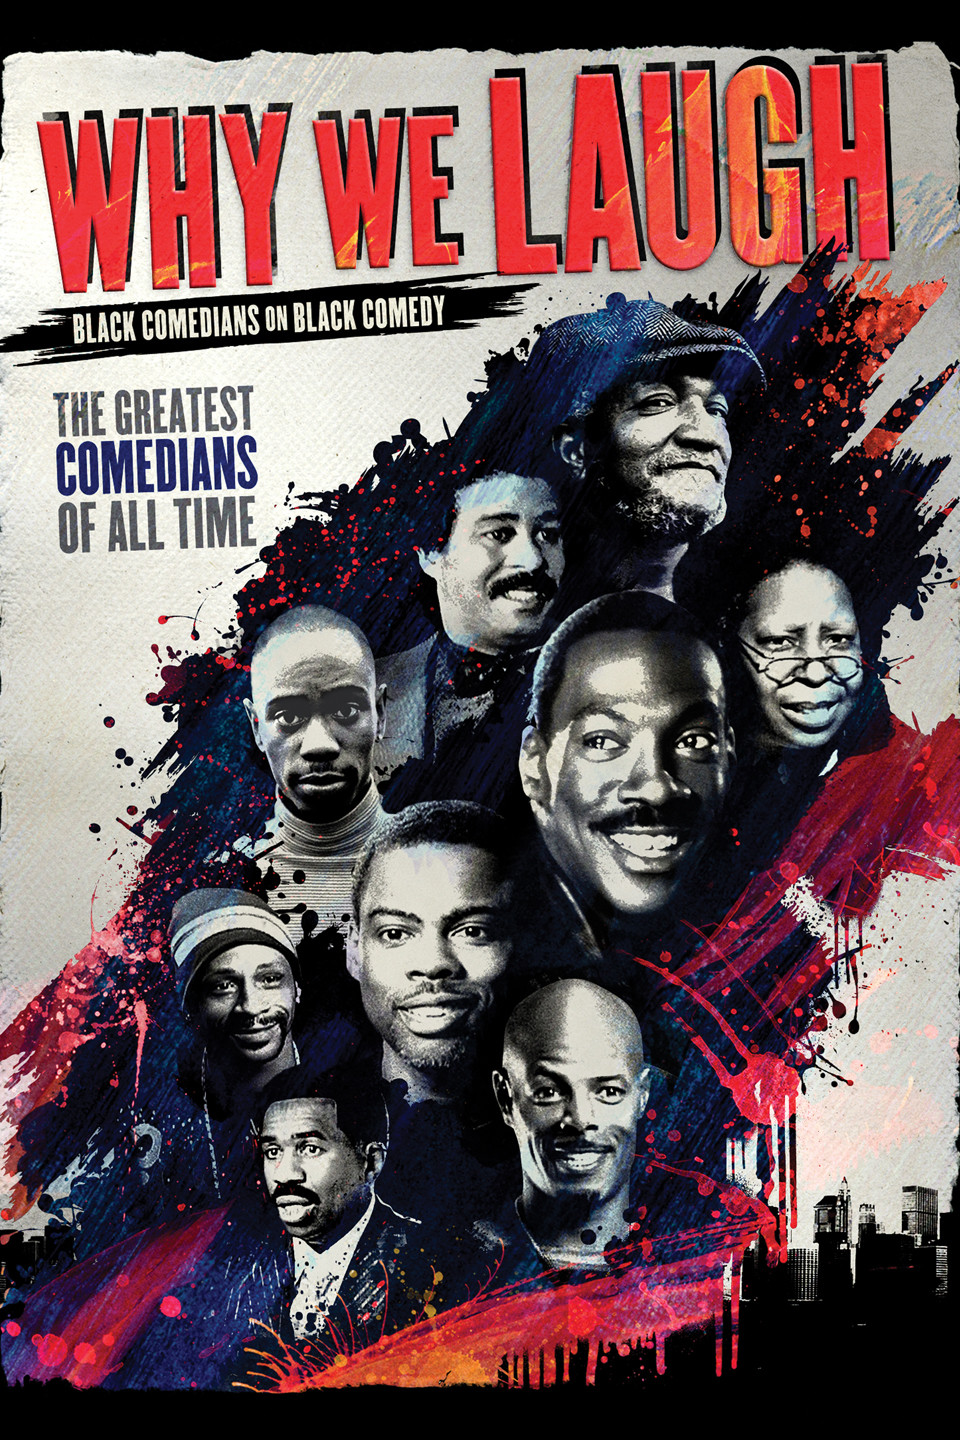 All Comedy Movies In 2009 movies like why we laugh: black comedians on black comedy